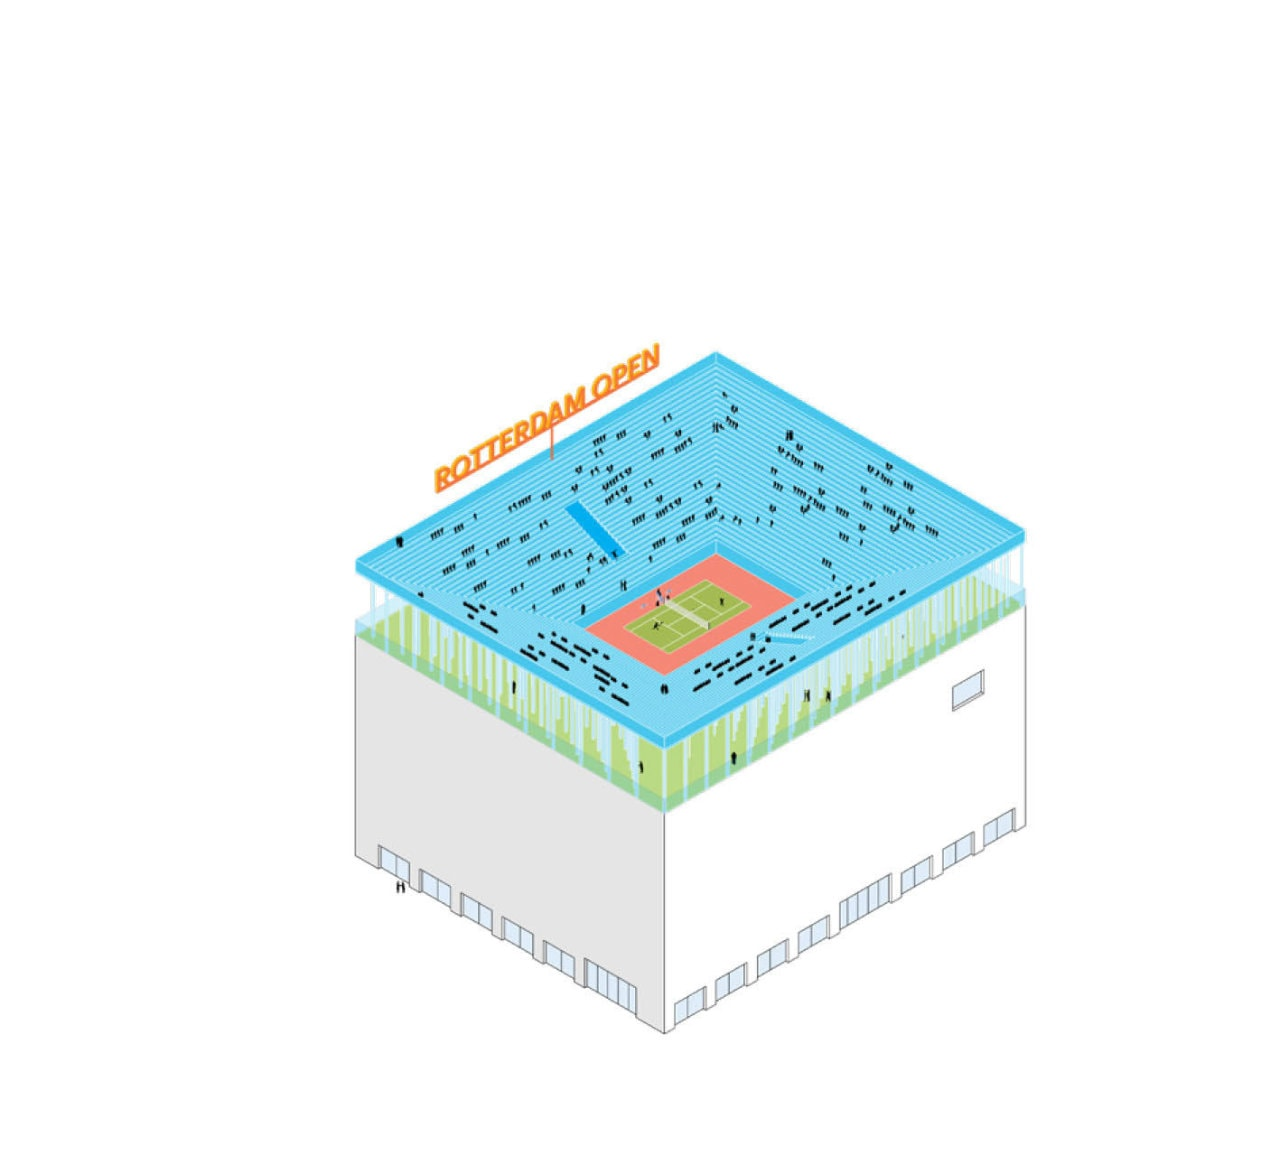 Stadium: In addition to playing sports on a rooftop, people could also watch sports. A small stadium (for tennis or urban sports, for example) would fit on a large rooftop